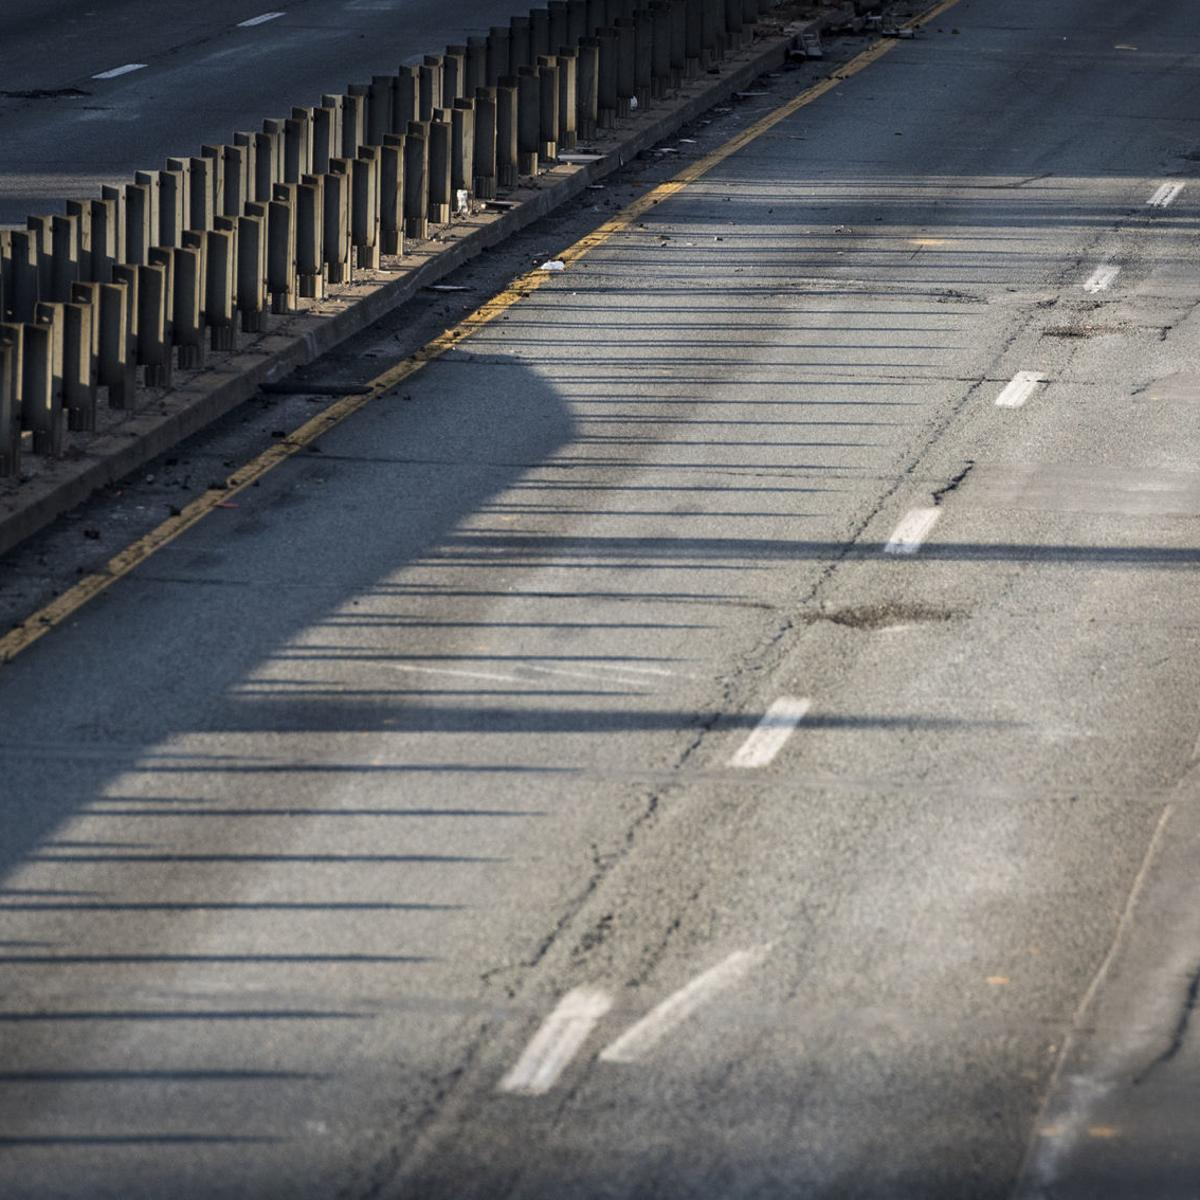 Lane and ramp closures coming to Business 40 this week, including